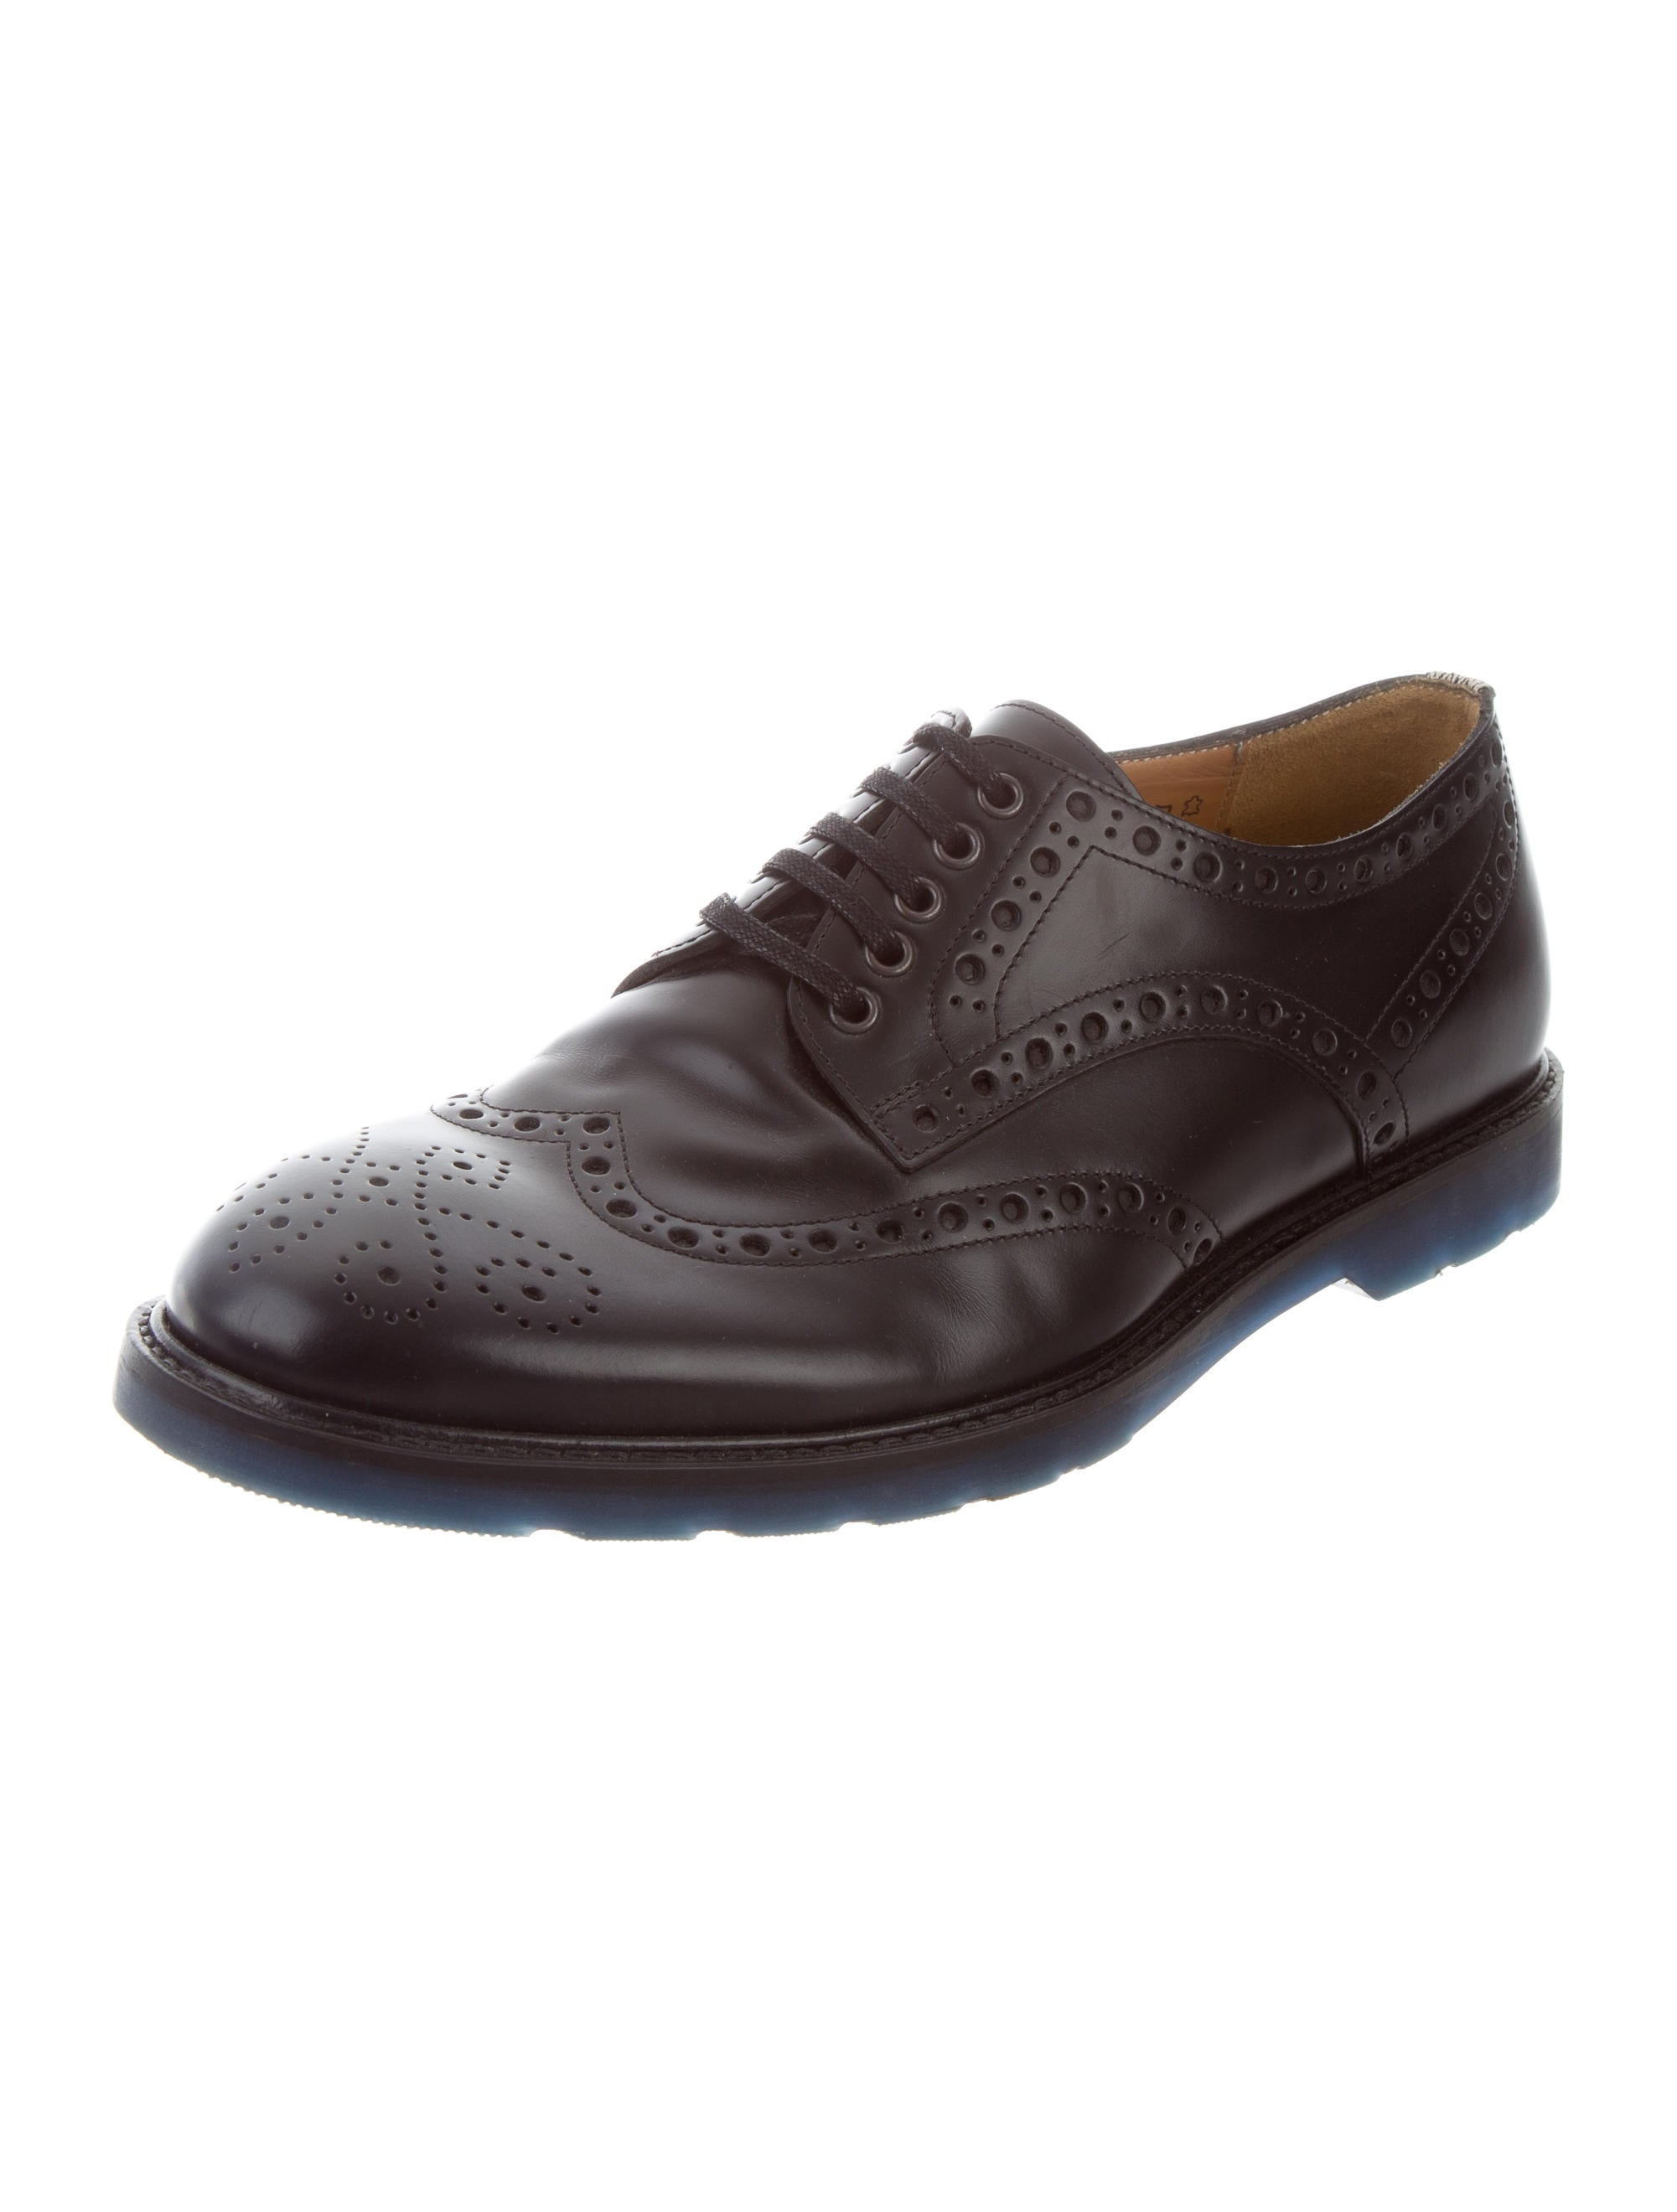 PS by Paul Smith Leather Brogue Derby Shoes Shoes  : WPSPS207672enlarged from www.therealreal.com size 2001 x 2640 jpeg 160kB